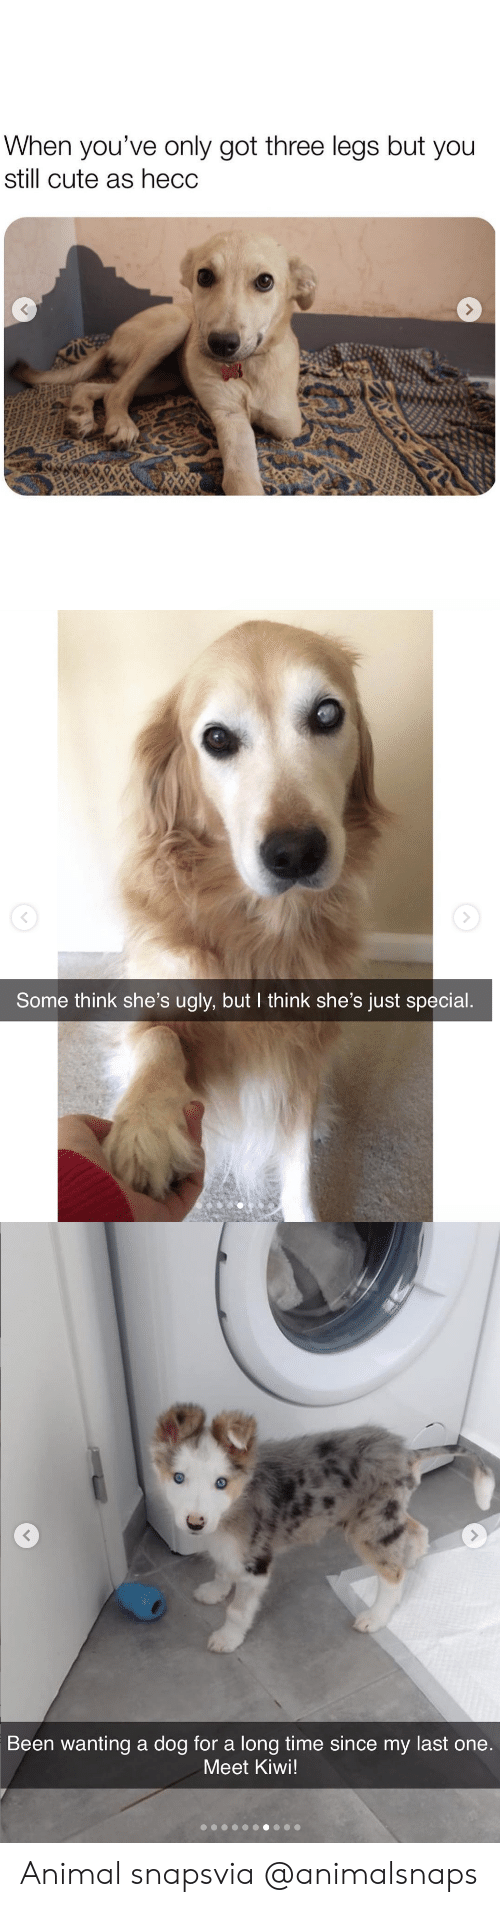 kiwi: When you've only got three legs but you  still cute as hecc   Some think she's ugly, but I think she's just special.   Been wanting a dog for a long time since my last one  Meet Kiwi! Animal snapsvia @animalsnaps